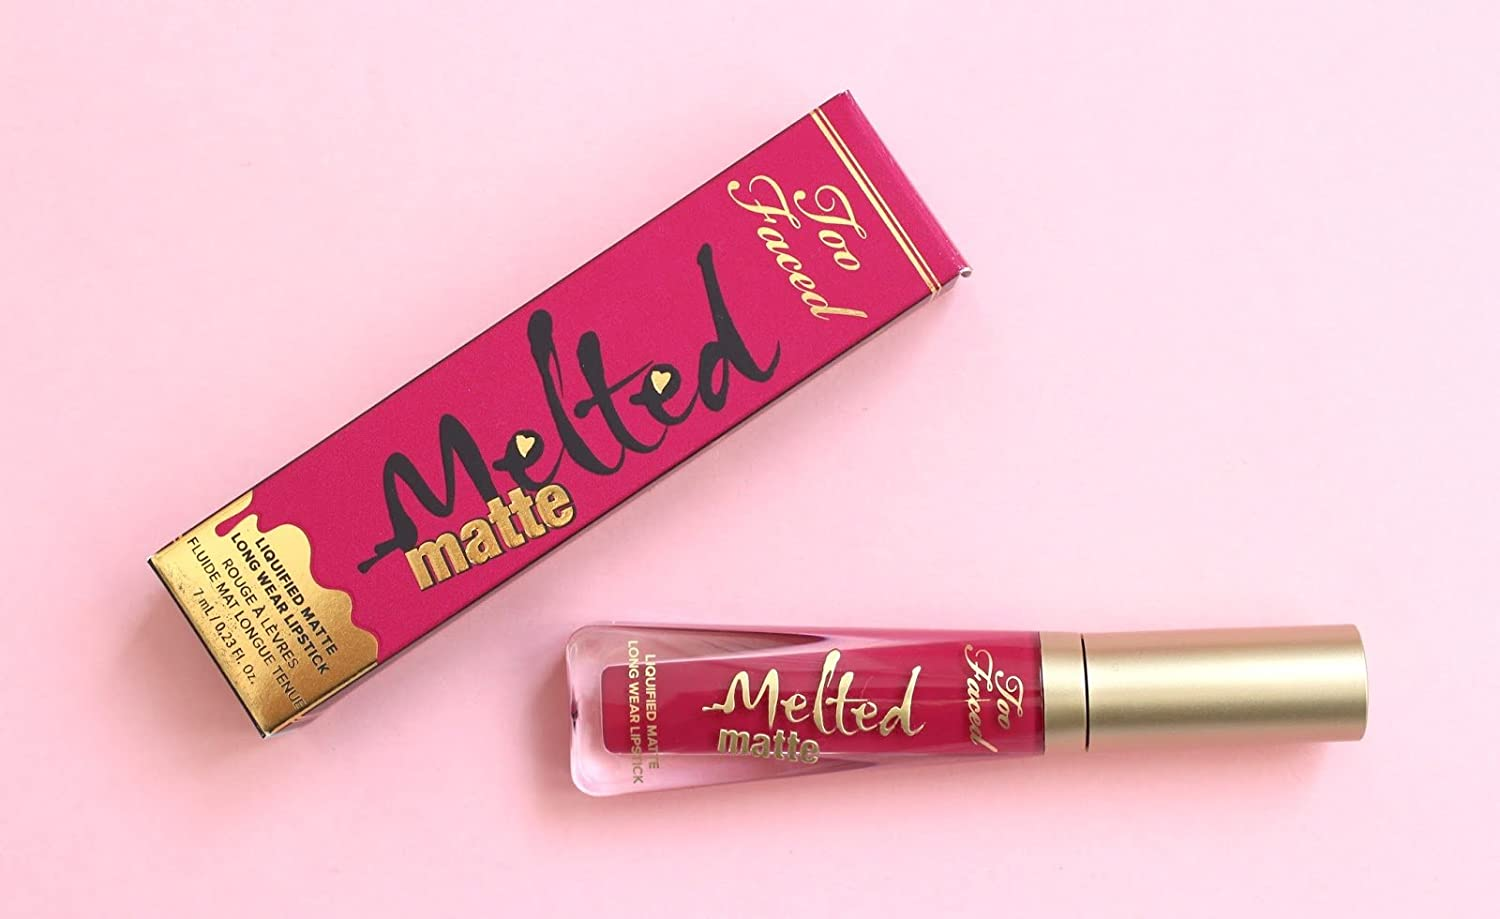 Too Faced Melted Matte Liquified Long Wear Matte Lipstick - Bend and Snap!